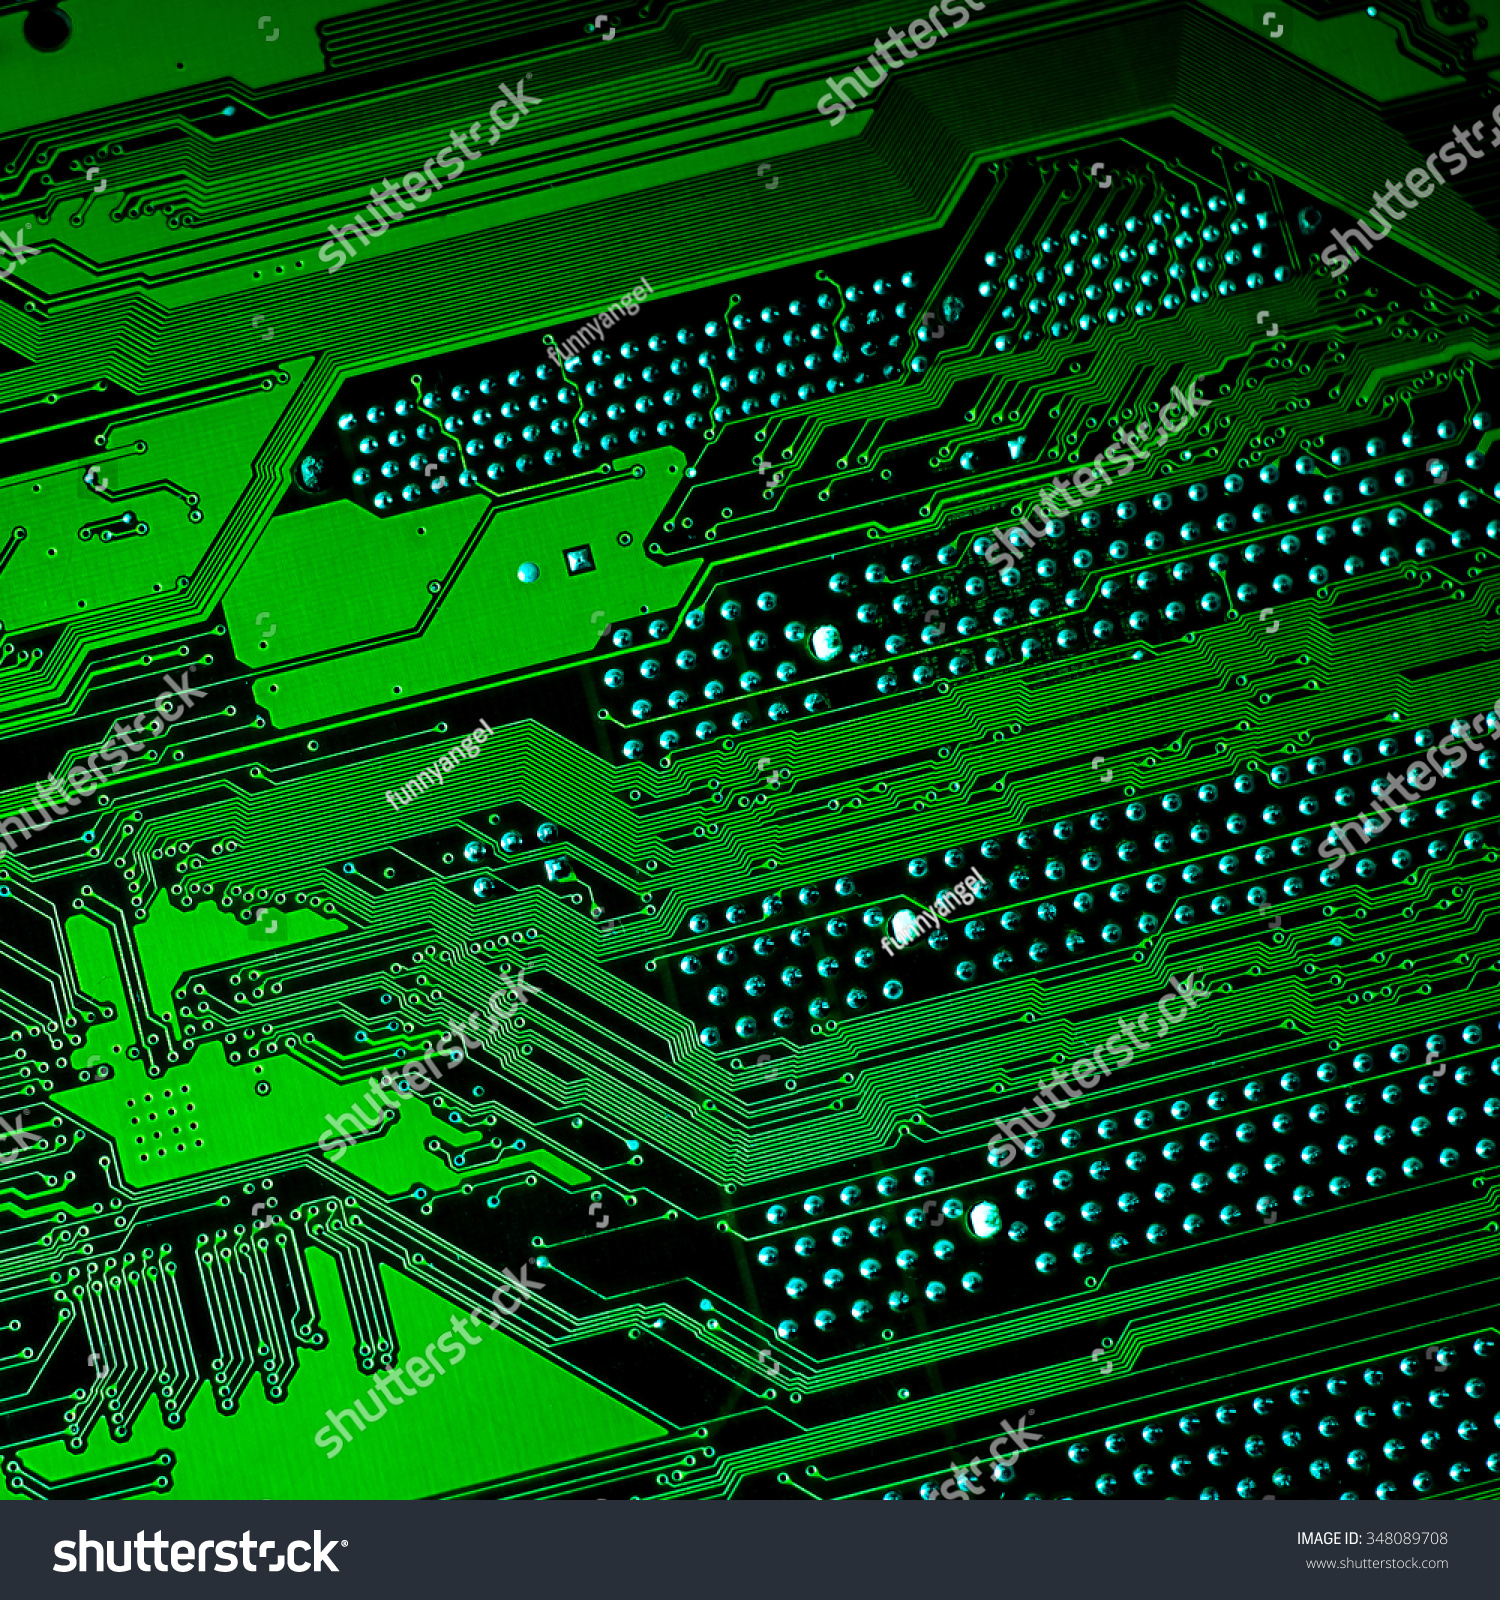 Royalty Free Circuit Board Electronic Computer 348089708 Stock Integrated Chip Image Hardware Technology Motherboard Digital Tech Science Background Communication Processor